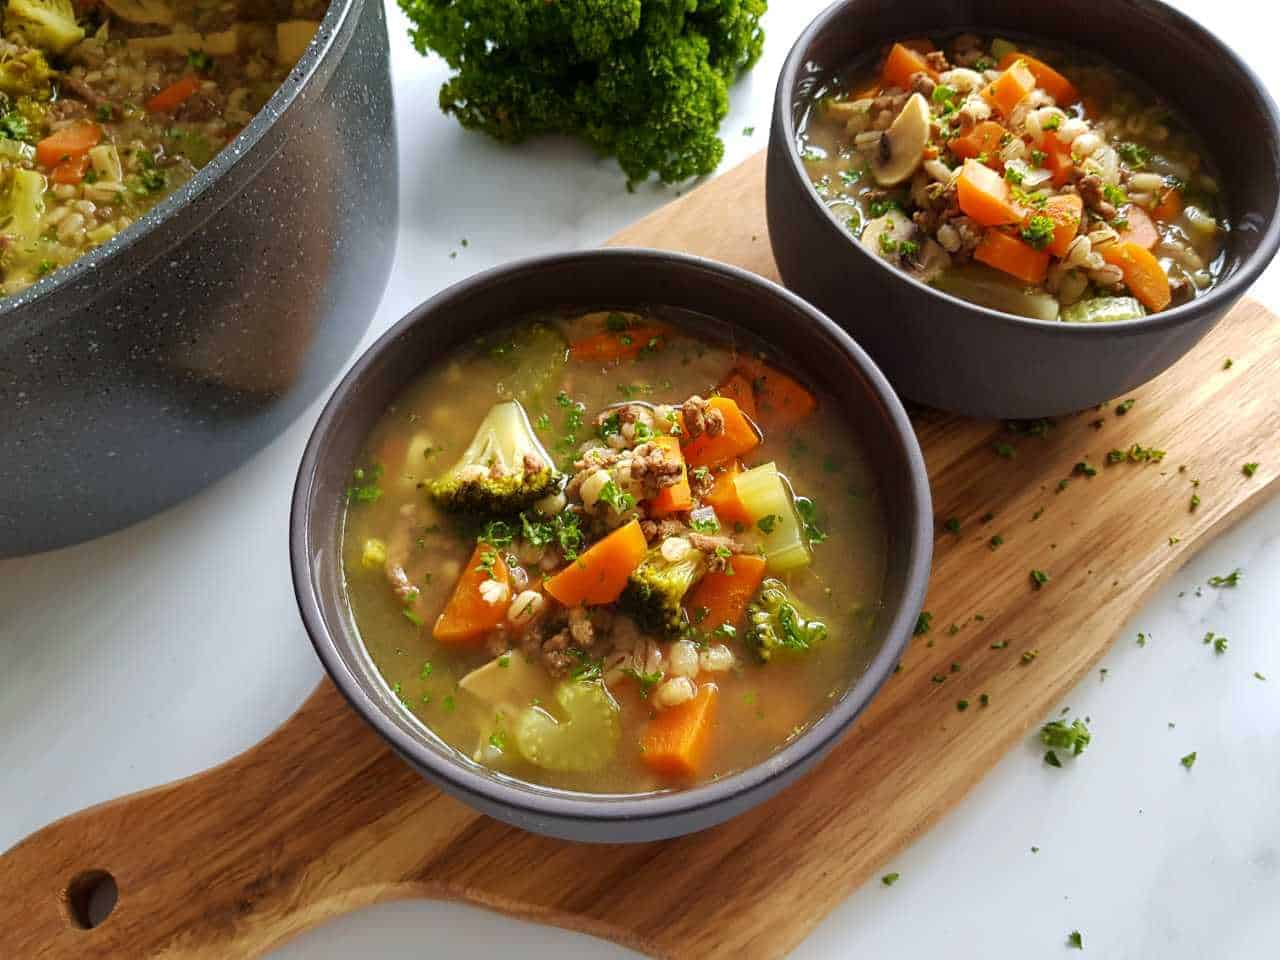 Barley soup with ground beef in bowls on a wooden chopping board.